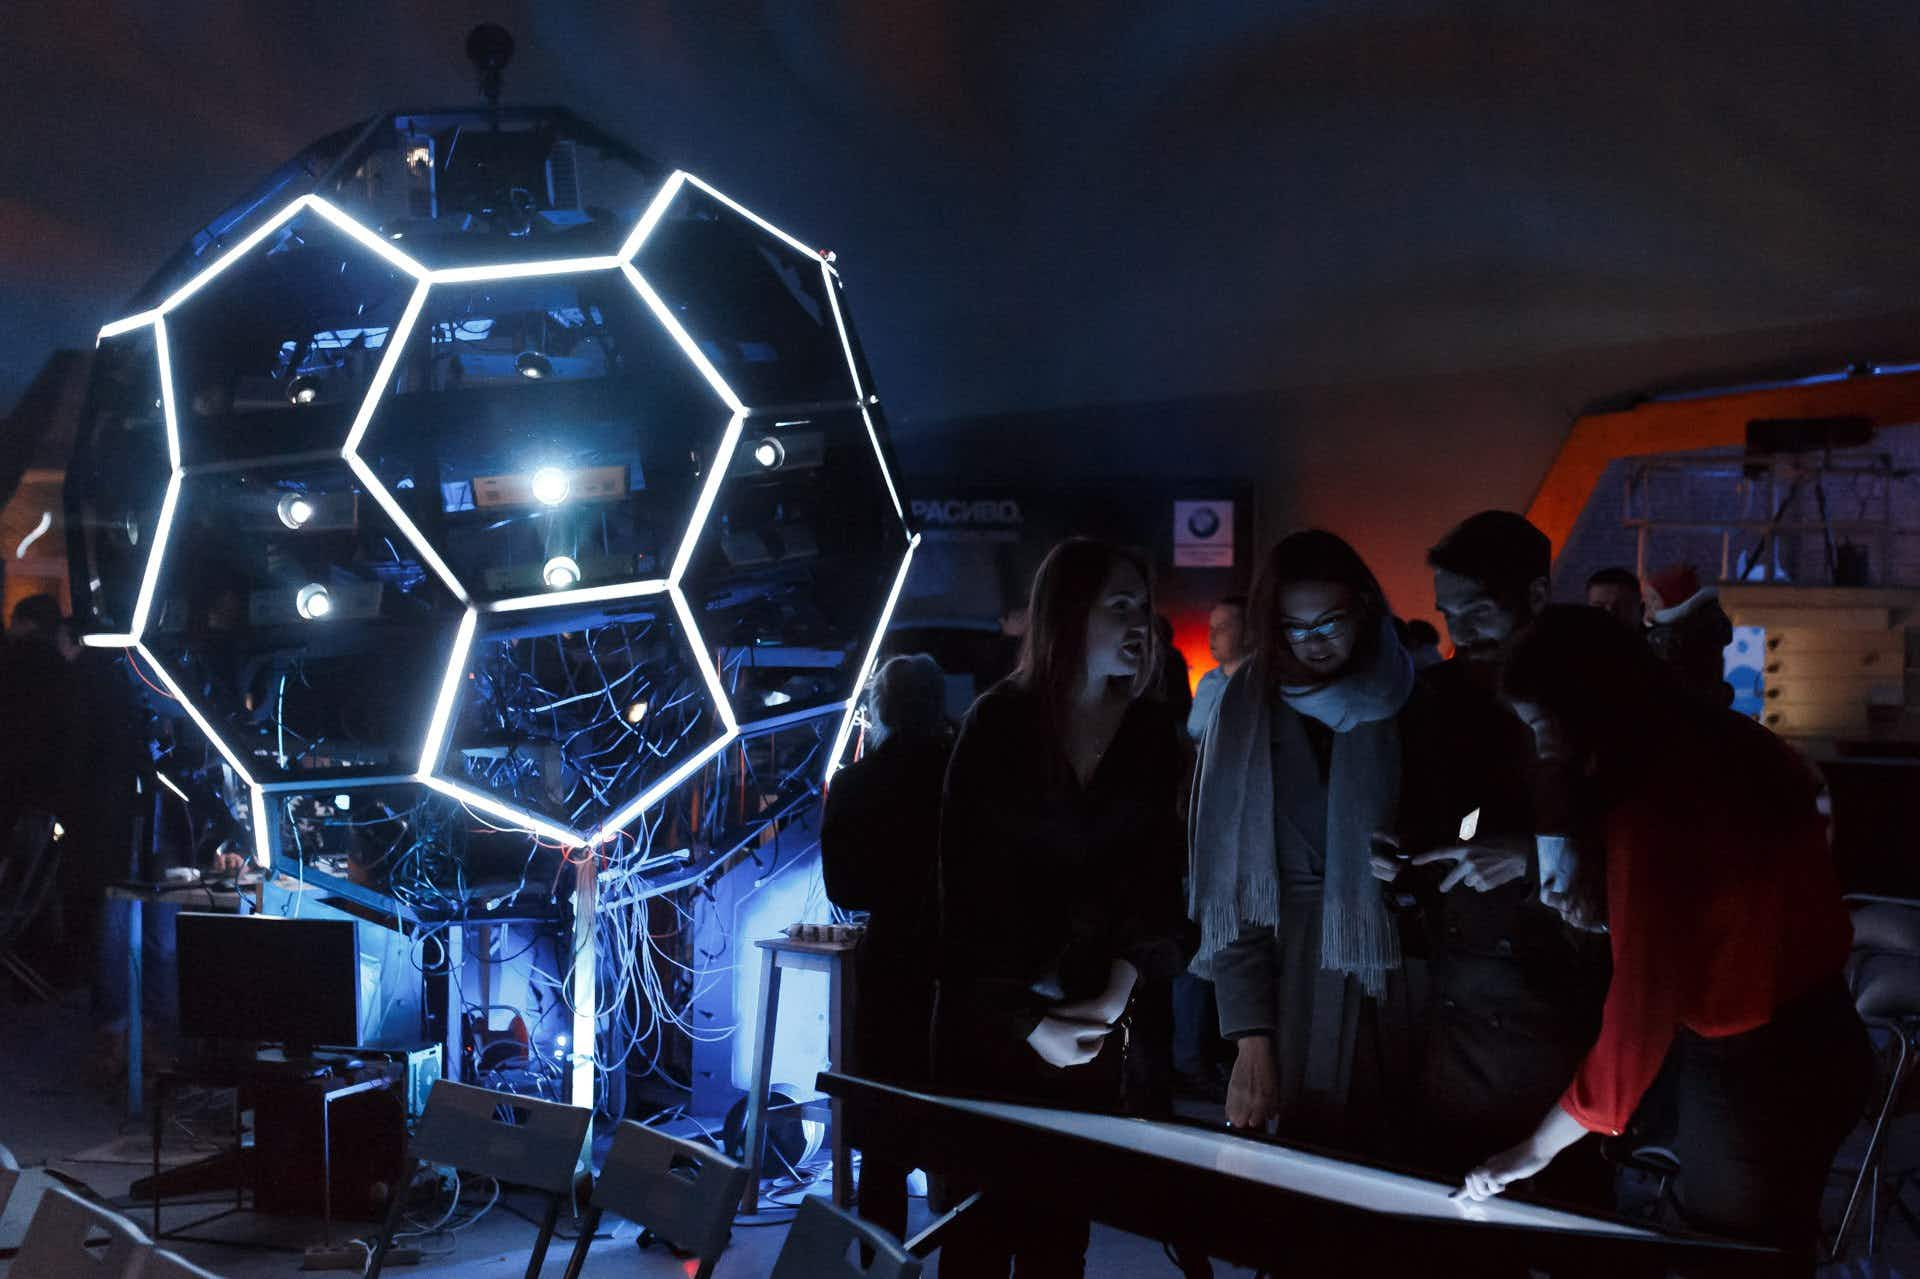 St Petersburg is now home to the world's biggest planetarium